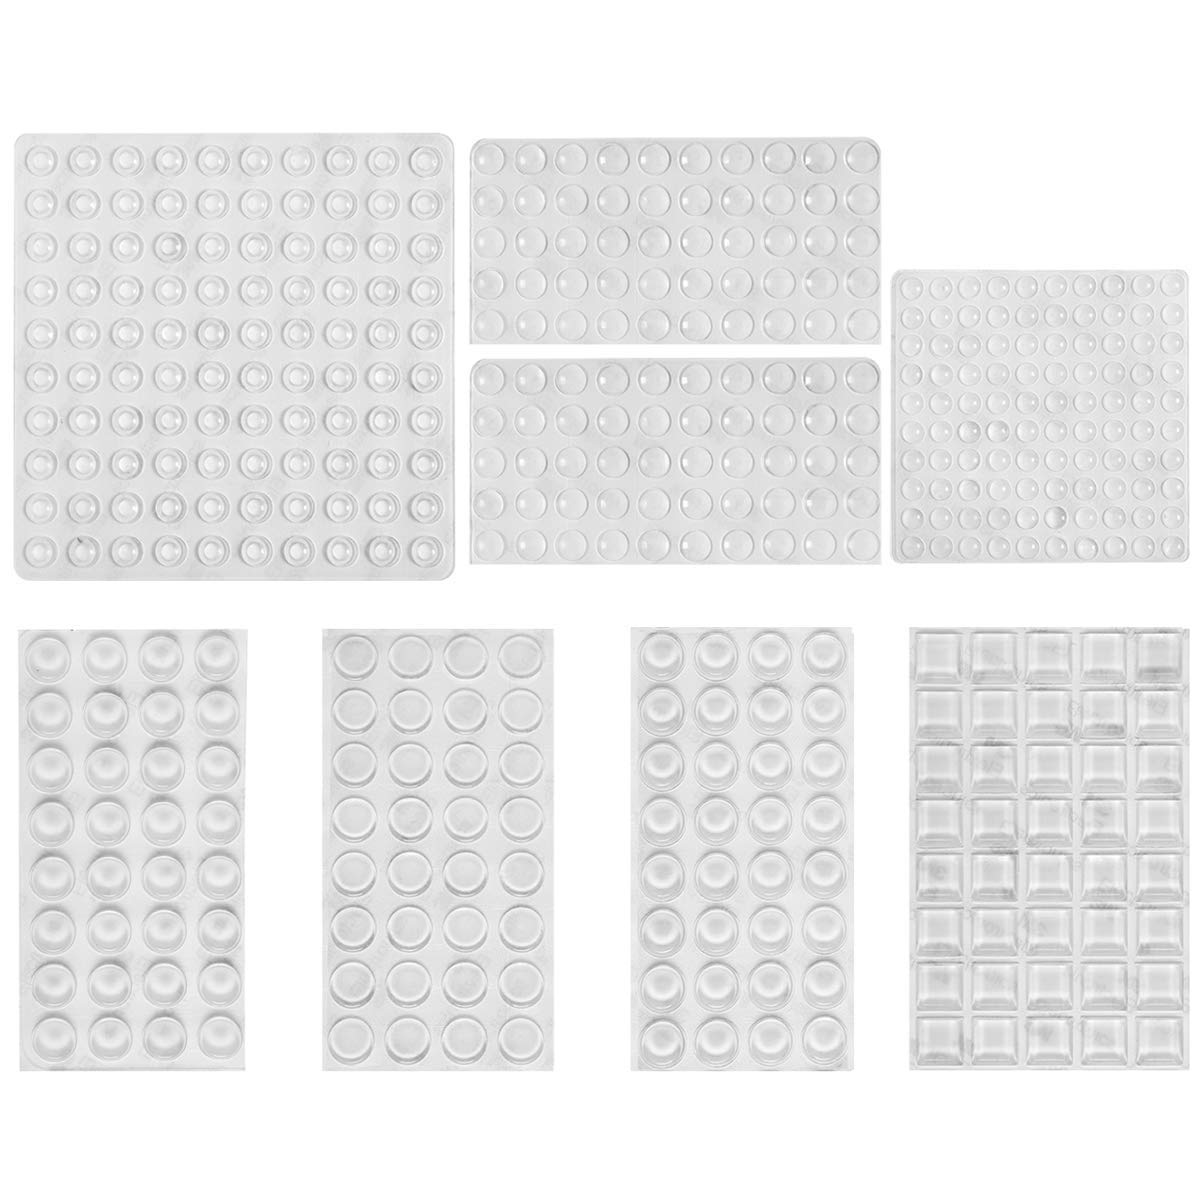 PAMASE 436 PCS Cabinet Bumpers Clear Door Drawer Clear Rubber Feet Pads, Self Adhesive Plastic Sound Dampening Rubber Bumpers Protector for Furniture